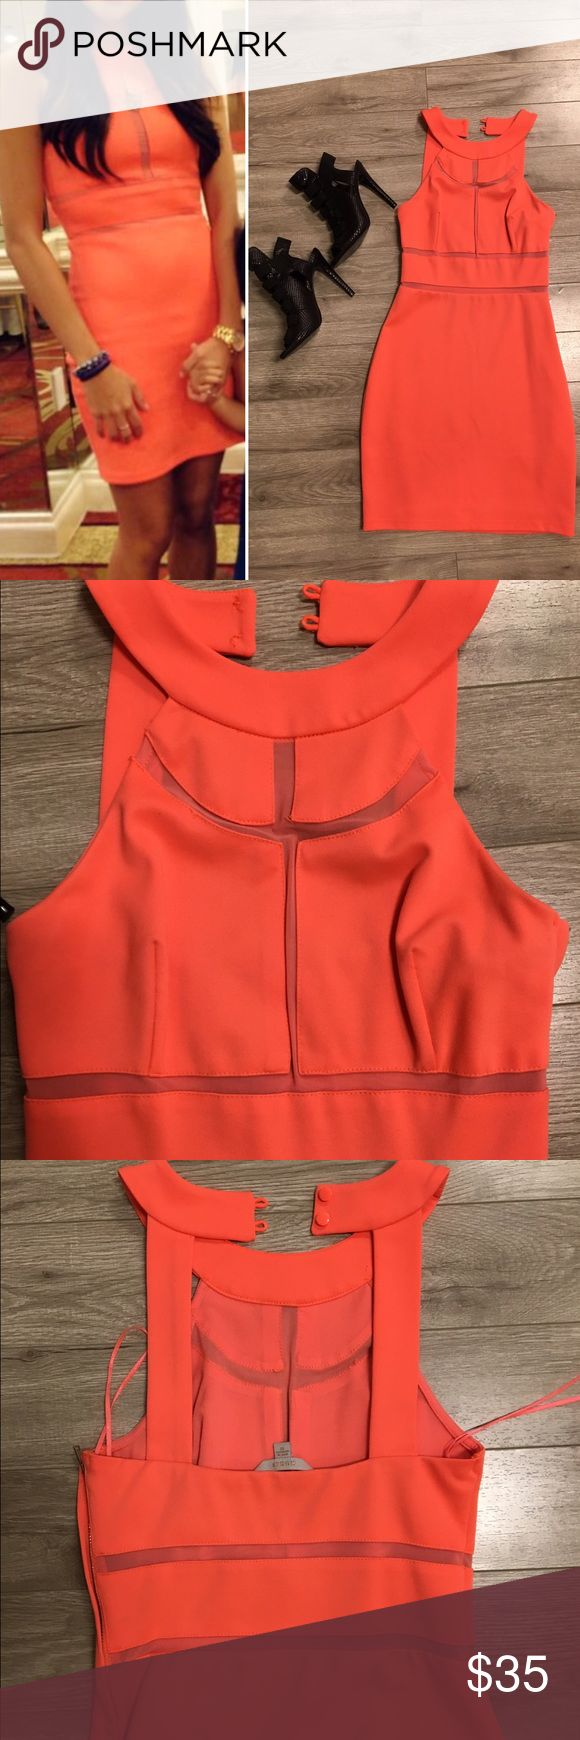 GUESS bright orange mini dress Super cute orange mini dress with mesh cut outs. Perfect for a spring wedding. Worn once to a wedding! No flaws, like new condition. Zipper is on the left side of dress. Dress is fully lined, awesome quality. Dresses